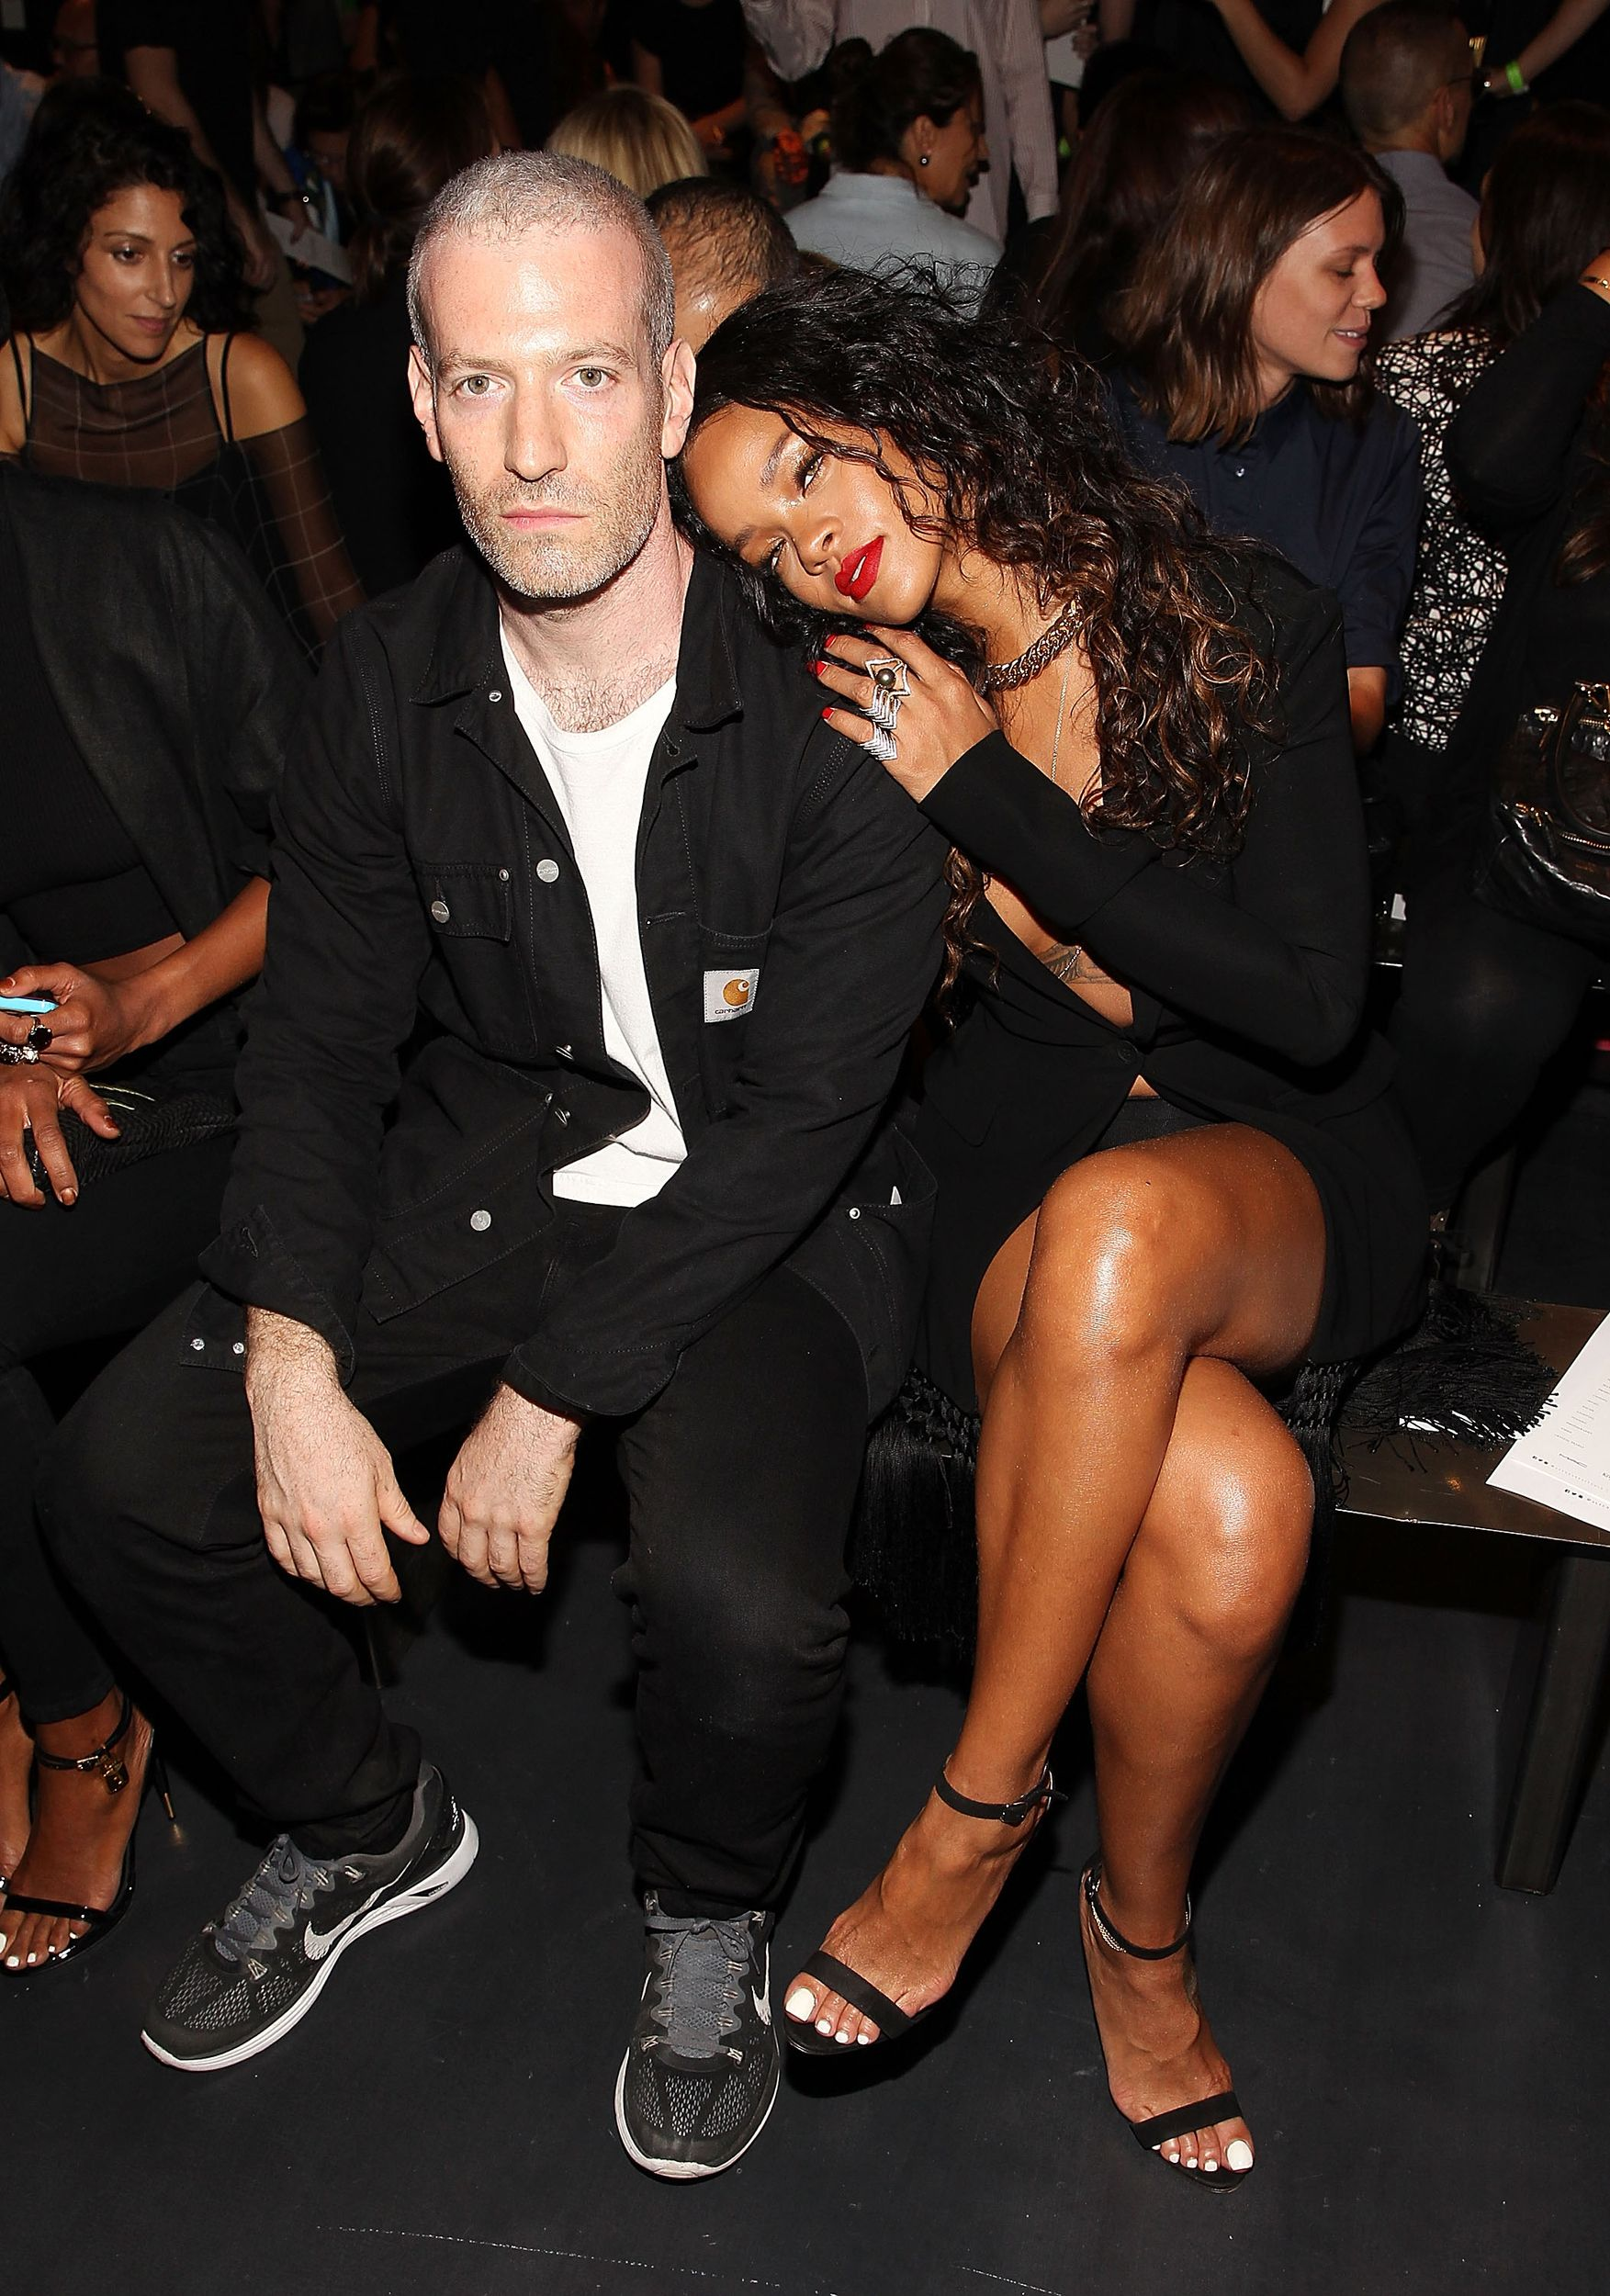 Stylist Mel Ottenberg and Rihanna attend the Altuzarra fashion show. via @stylelist | http://aol.it/YvhfgH